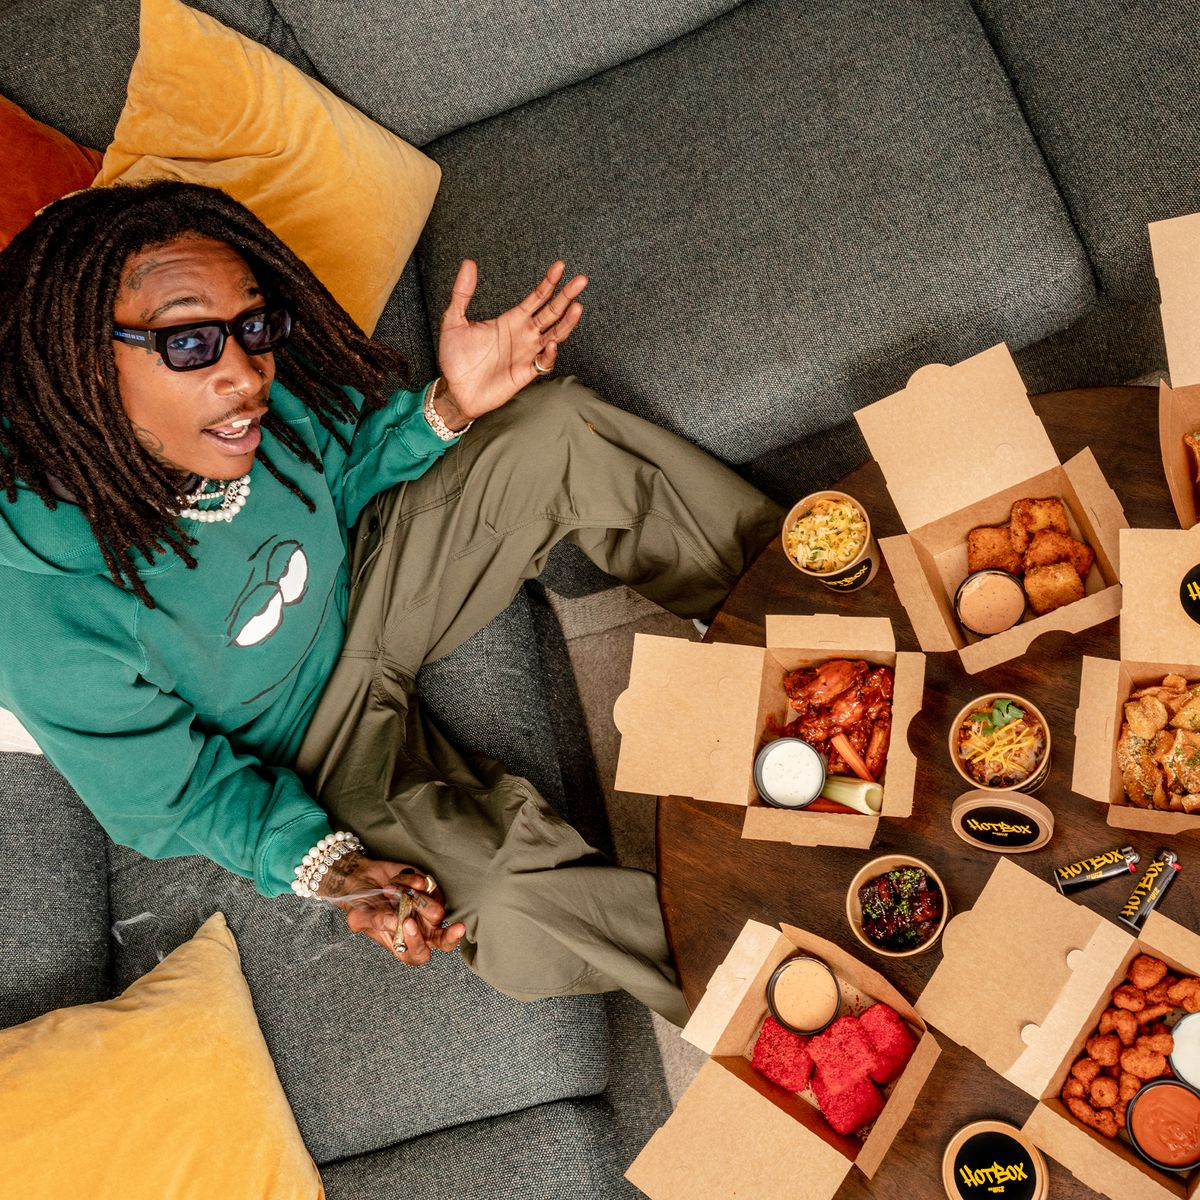 Rapper Wiz Khalifa sits on a grey couch in front of open boxes of food.